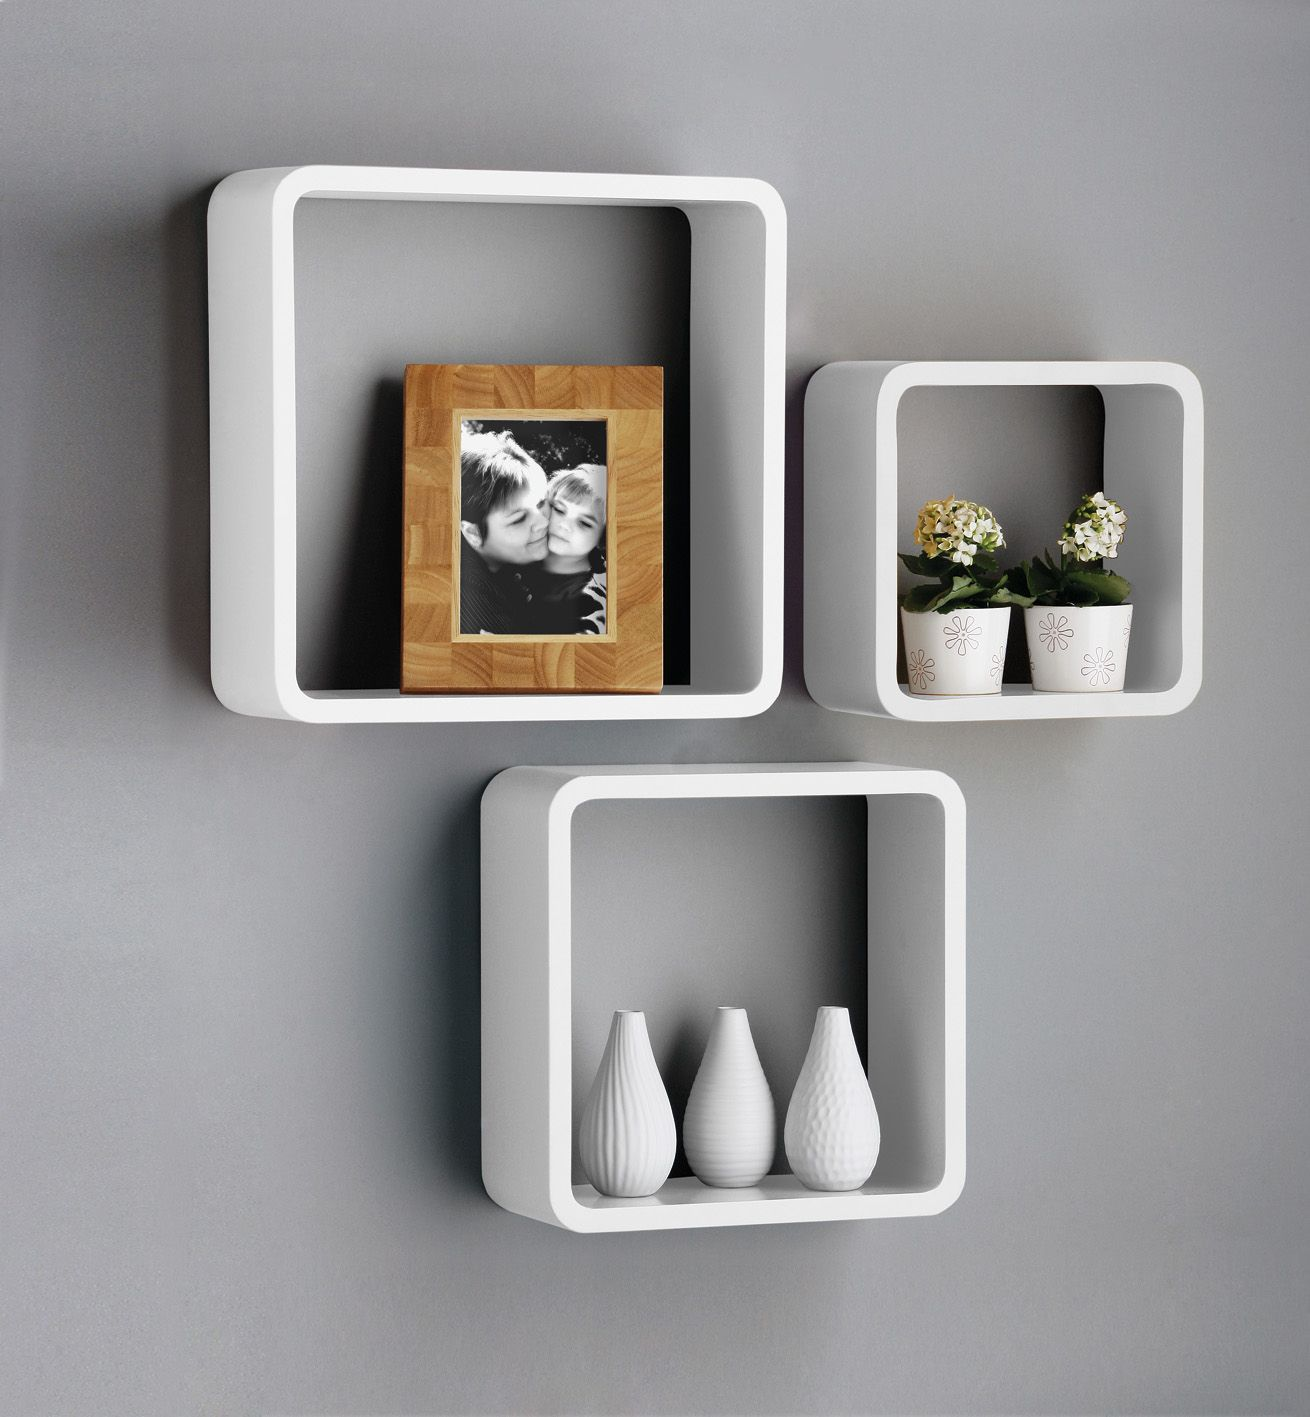 details about new set white black square floating cube wall box shelves ideas storage shelf cubes console unit glass shelving barn wood sink cabinet garage design wooden kitchen